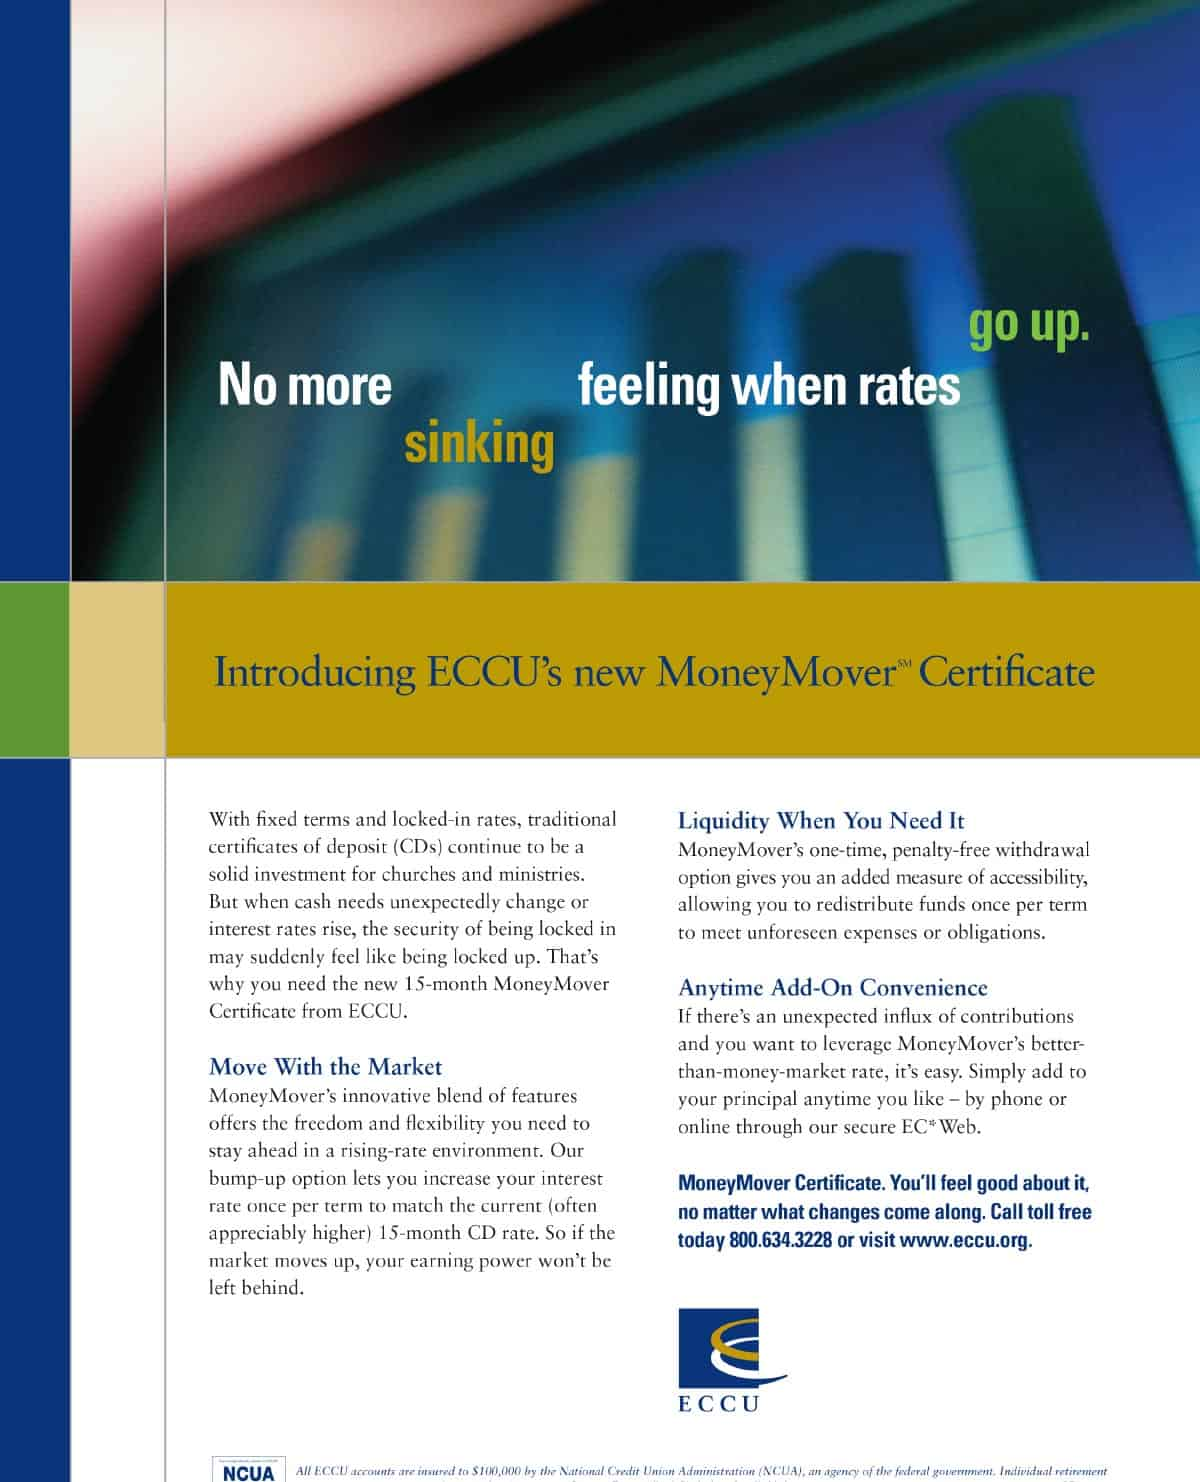 ECCU MoneyMover Ad